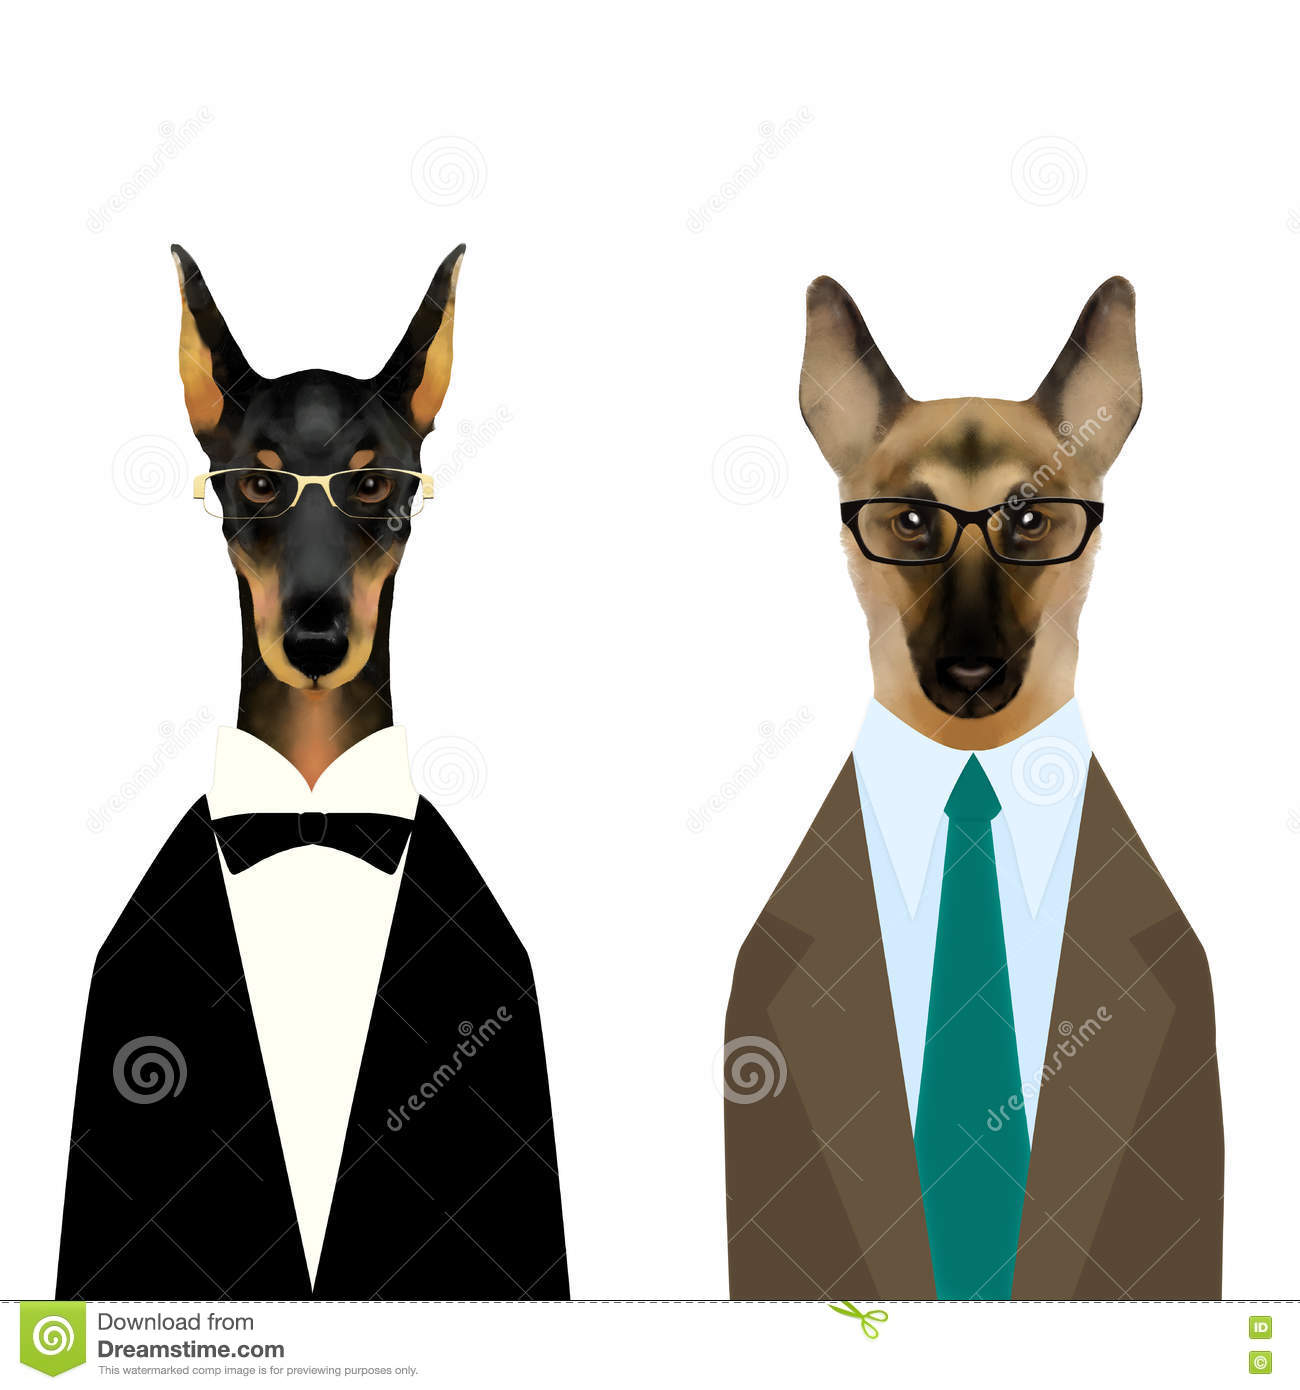 Pinscher Cartoons Illustrations Amp Vector Stock Images 202 Pictures To Download From